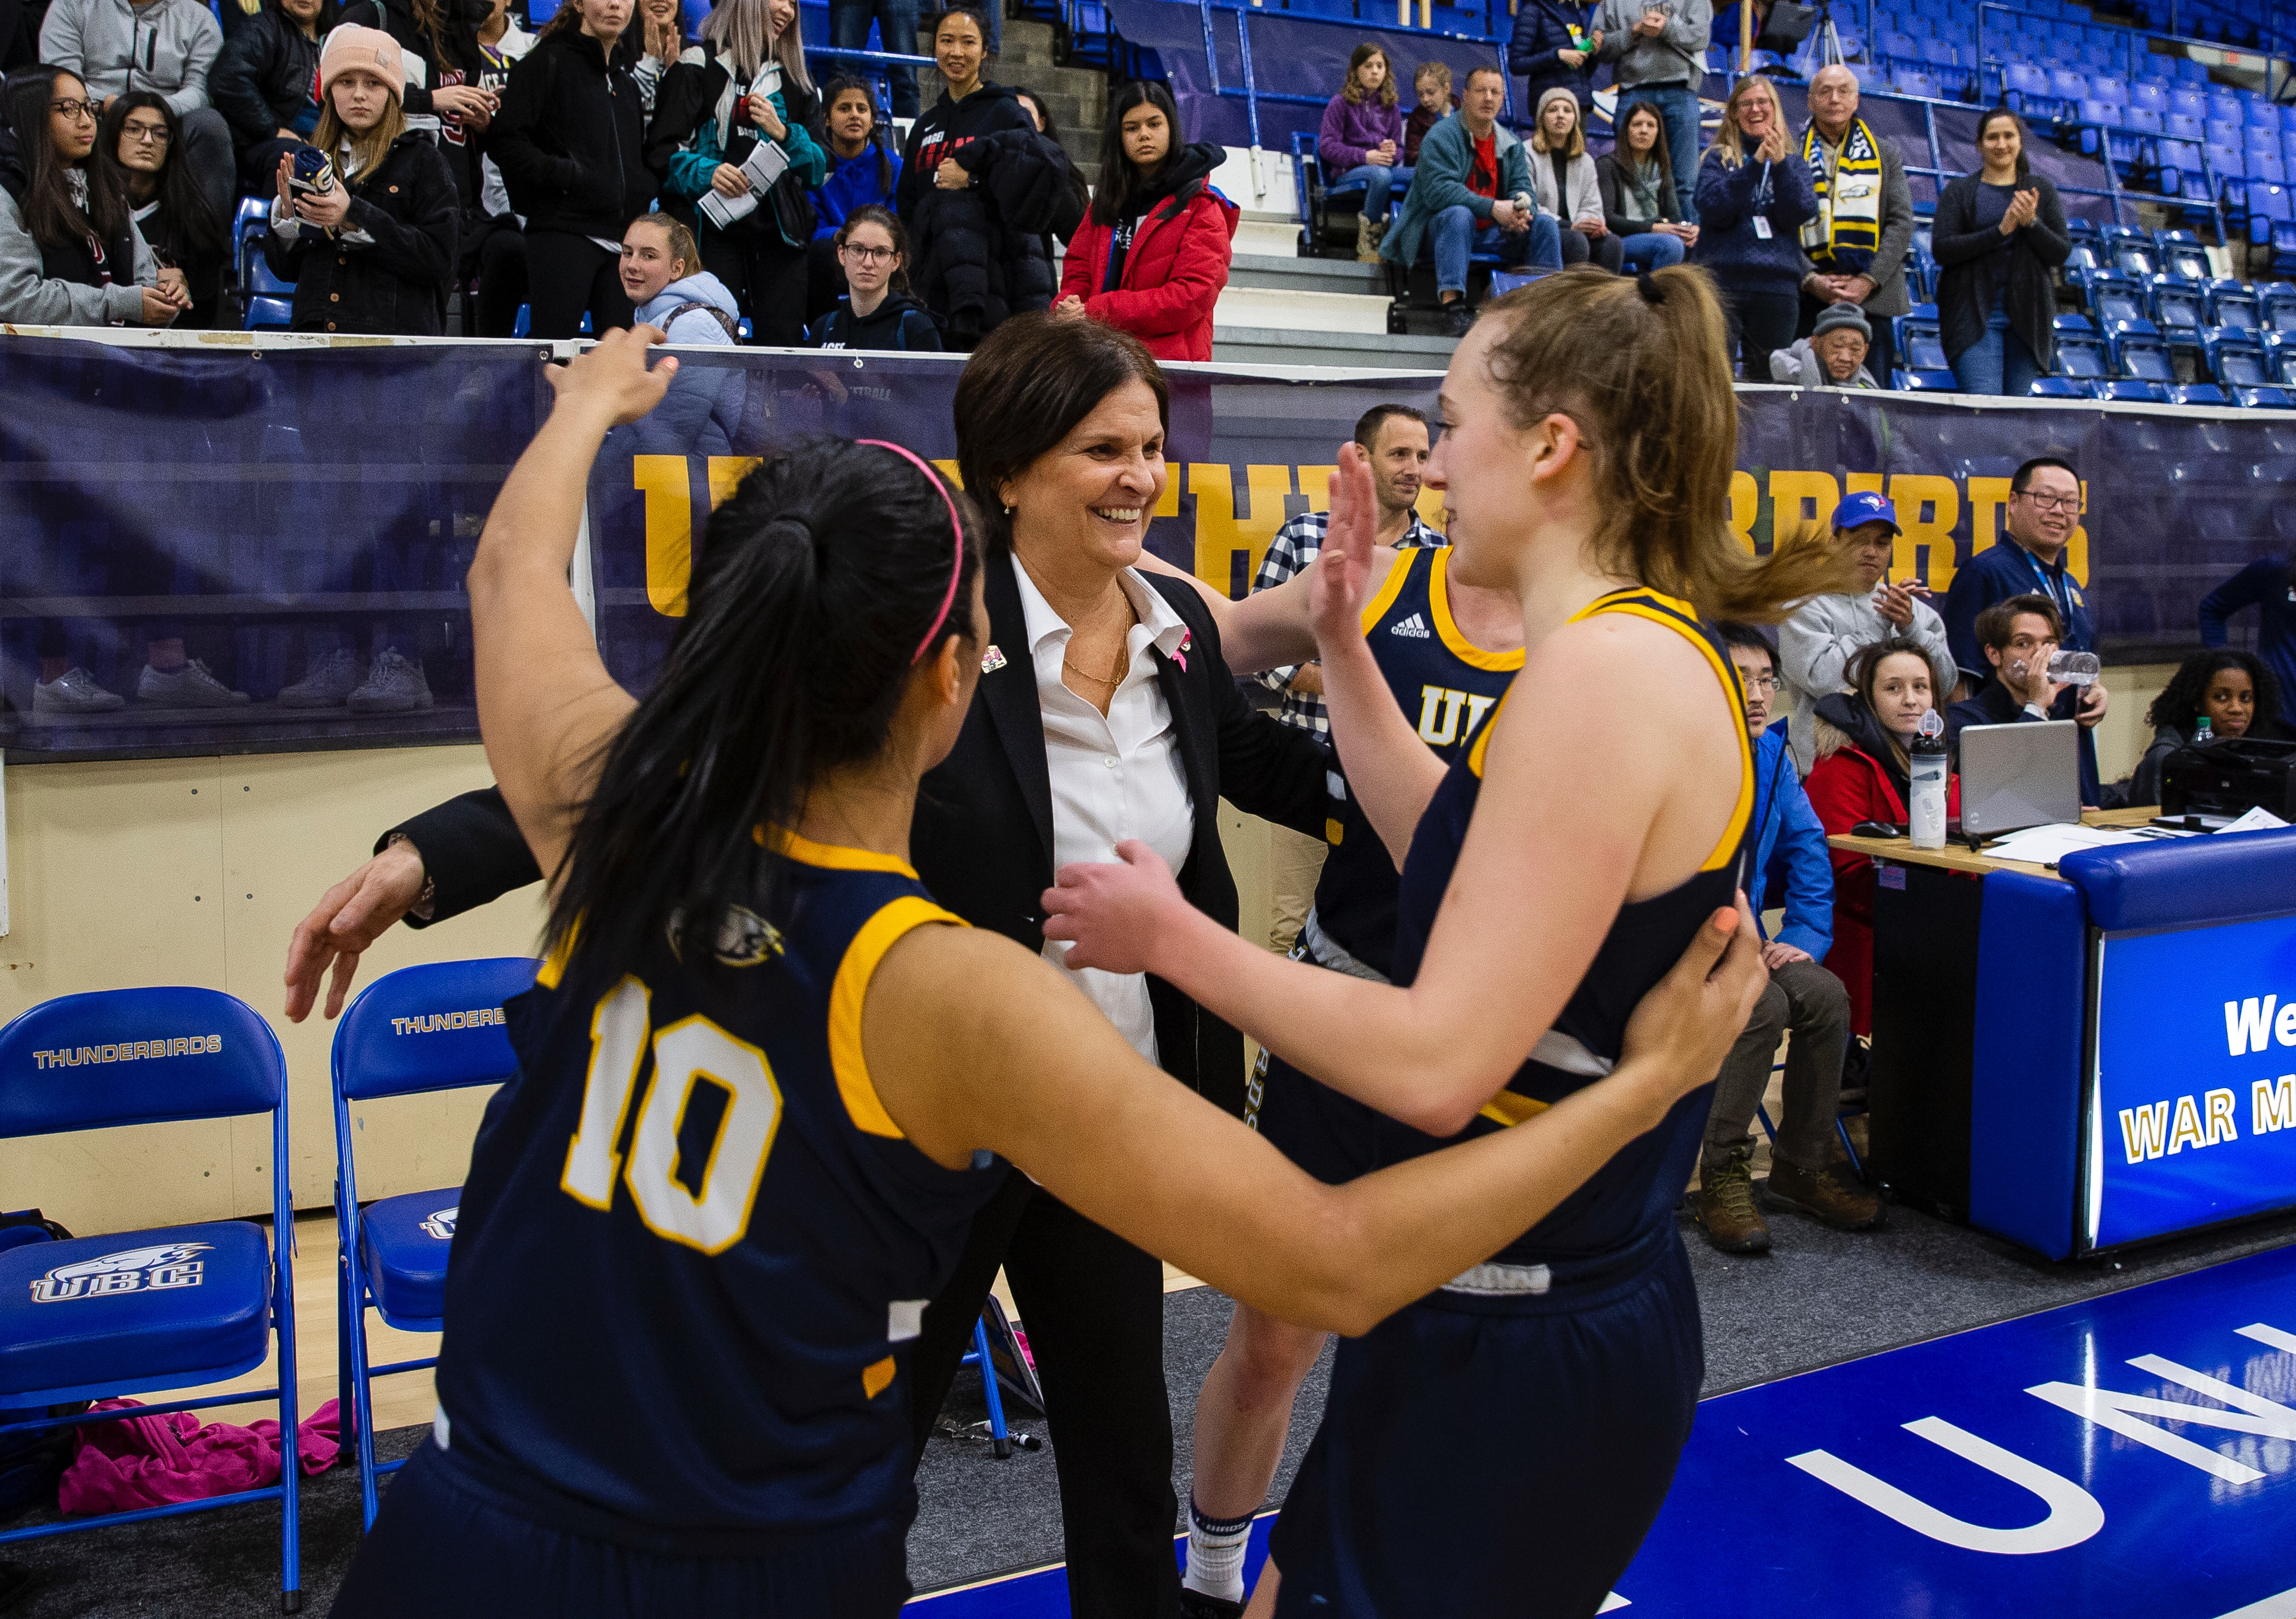 Coach Huband has a 509-273 overall record at UBC.